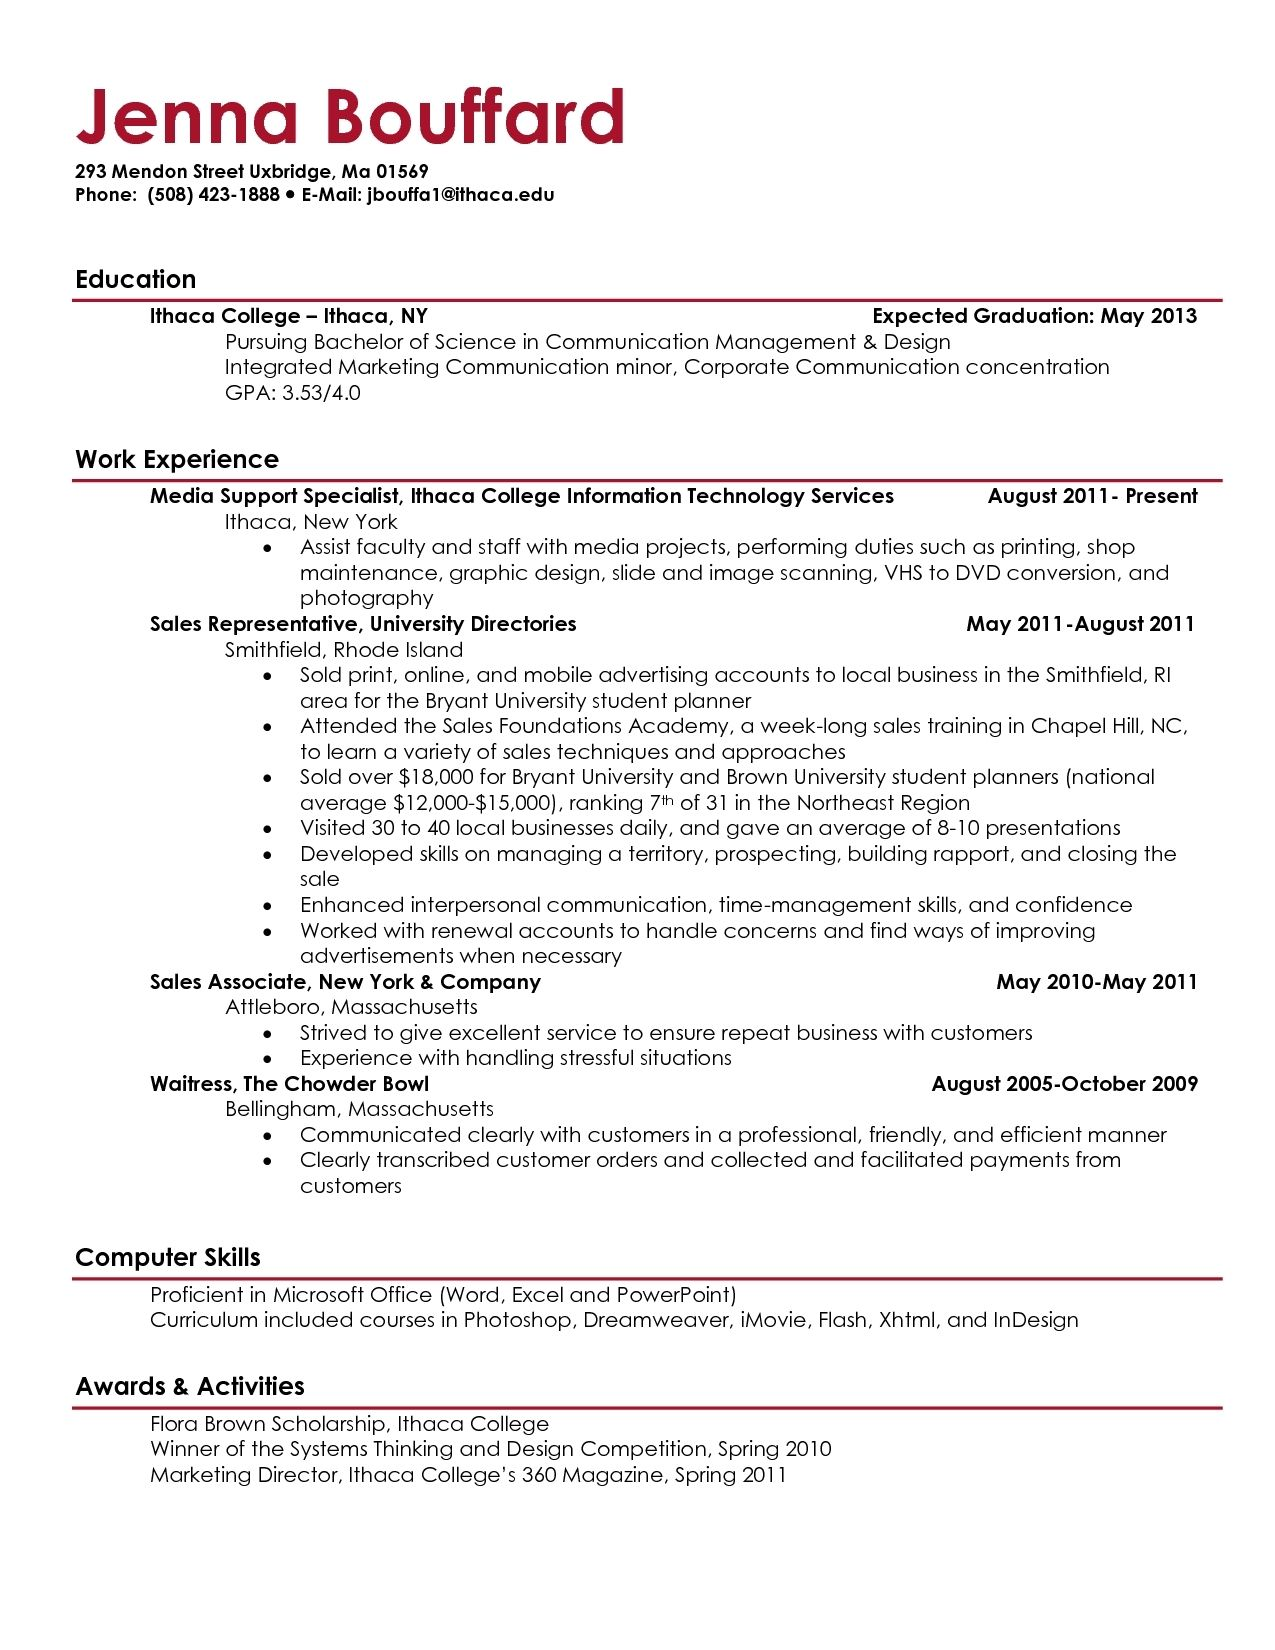 Resume Design  Good Objective For Medical Receptionist Resume In